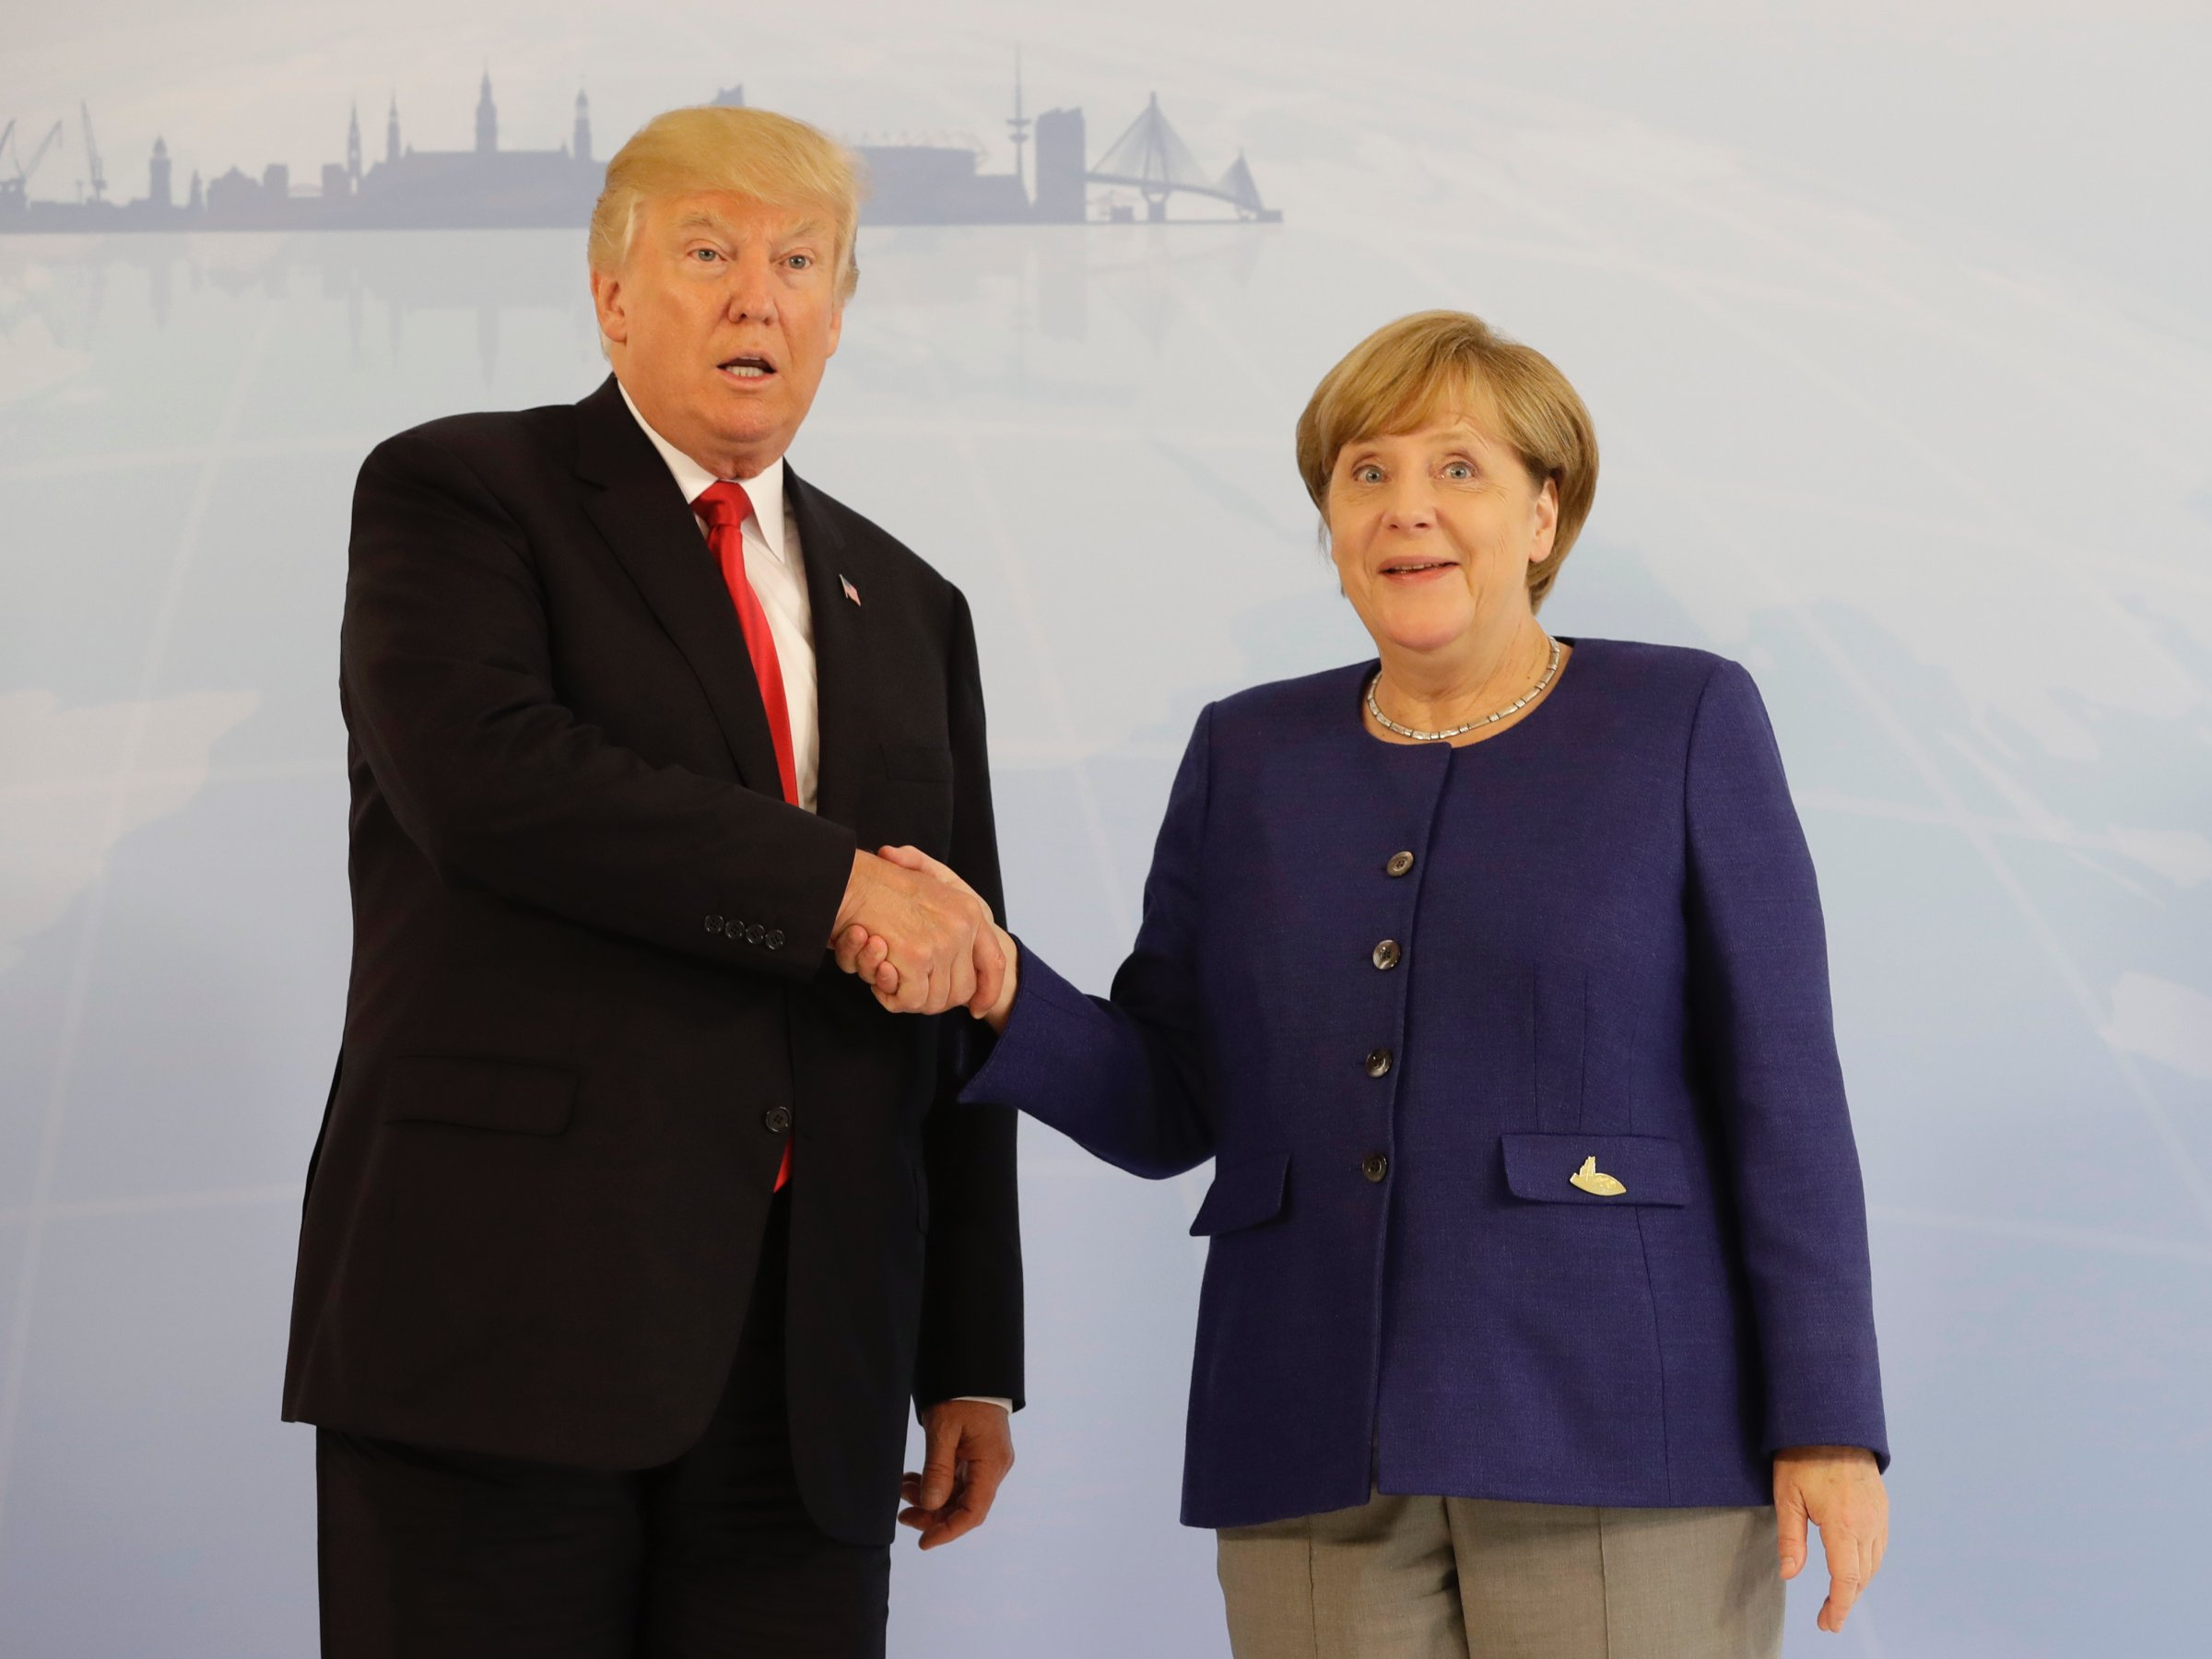 G20 summit: Theresa May to challenge Trump over climate change